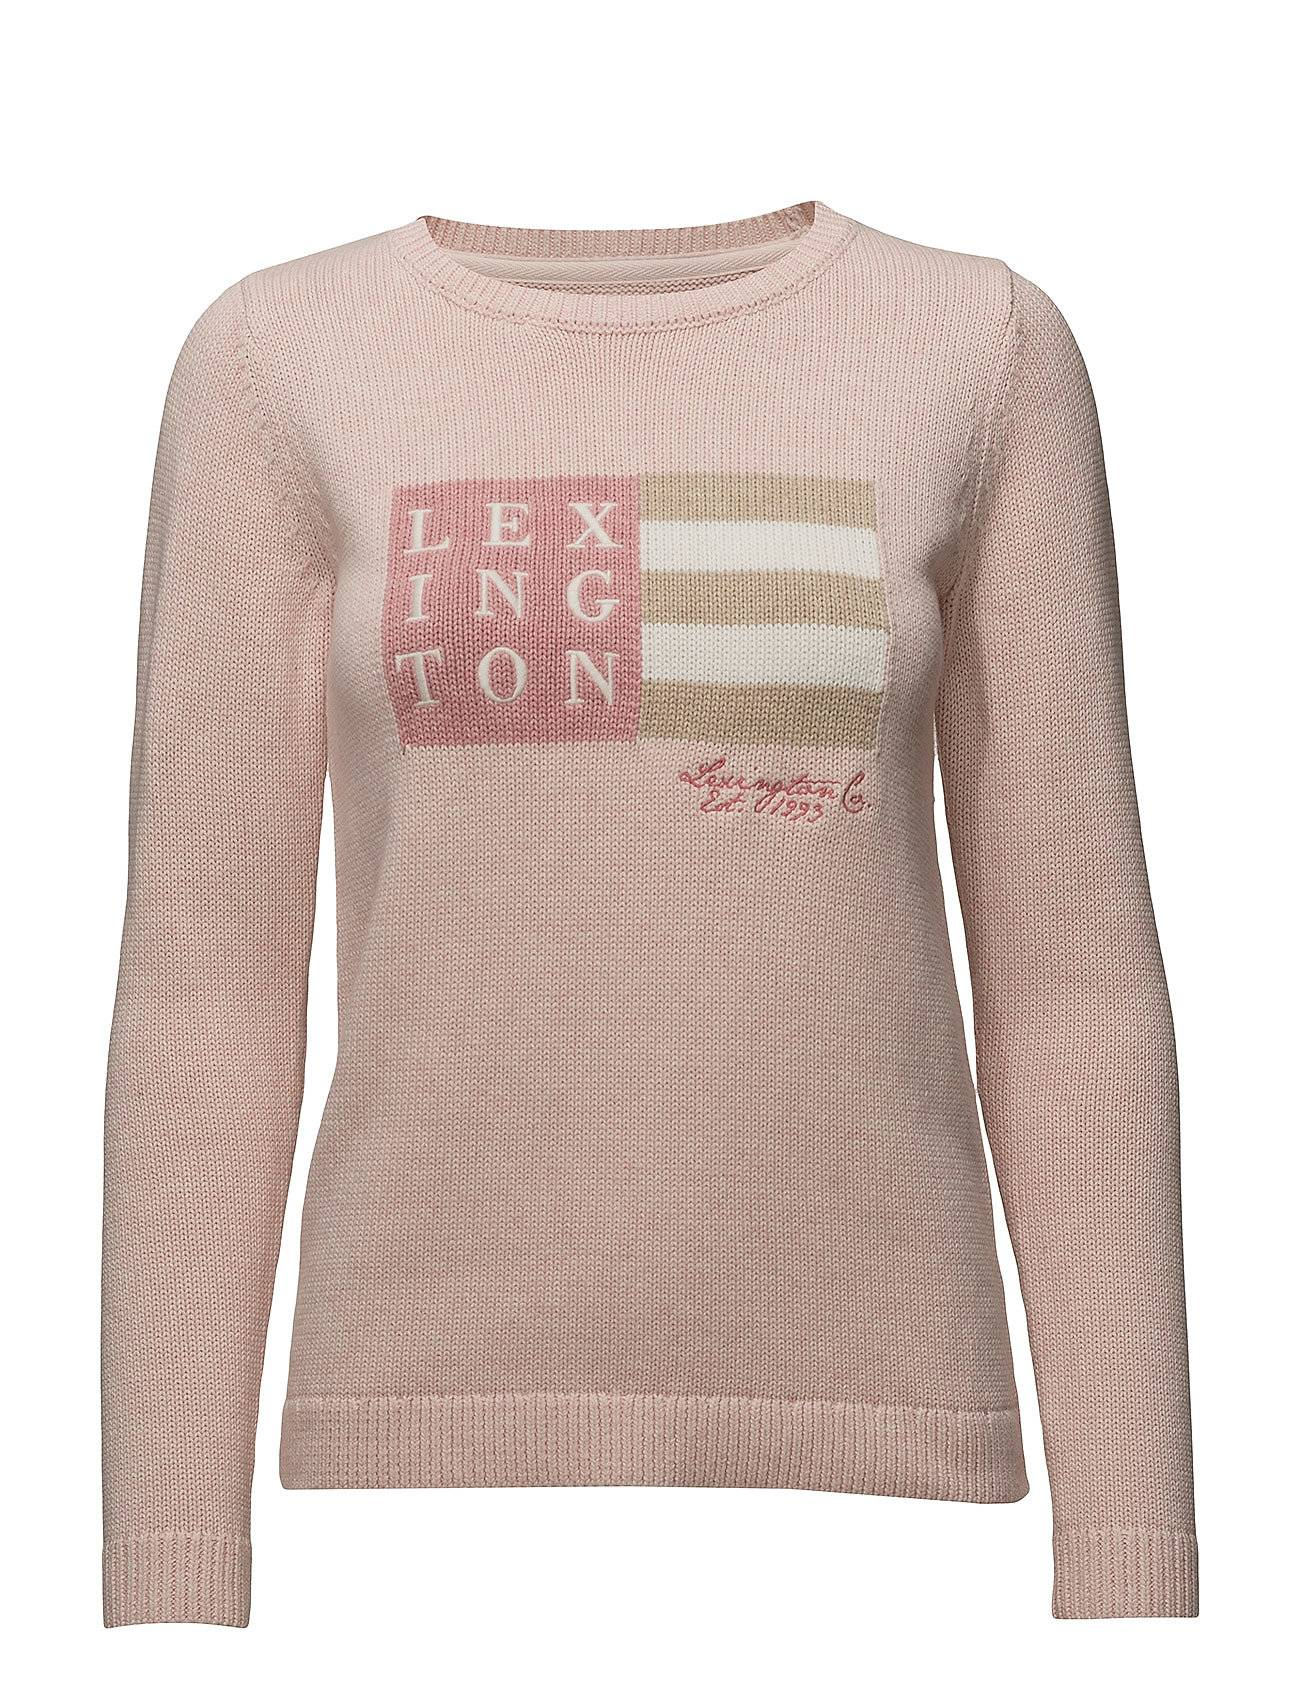 Lexington Clothing Lova Sweater